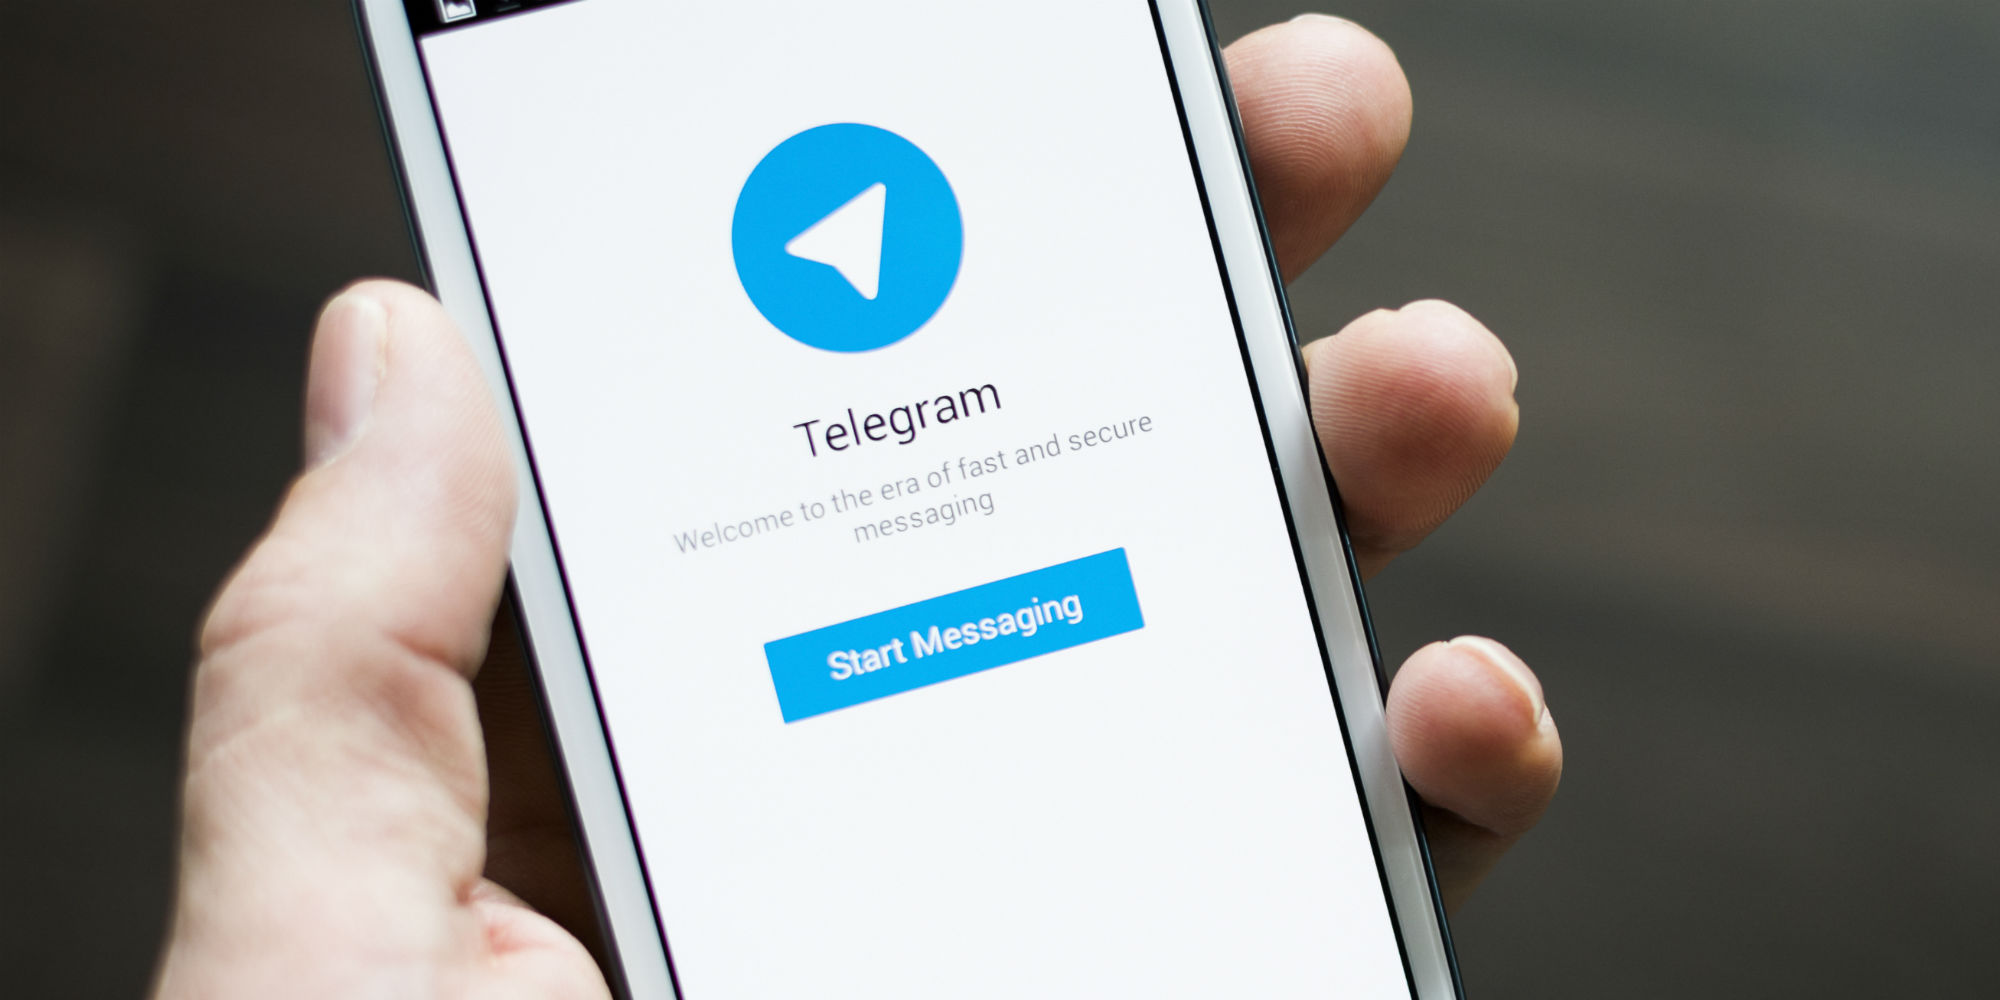 [BugBounty]Disclosure of 5 million links to private telegram chats and the ability to edit any article telegra.ph